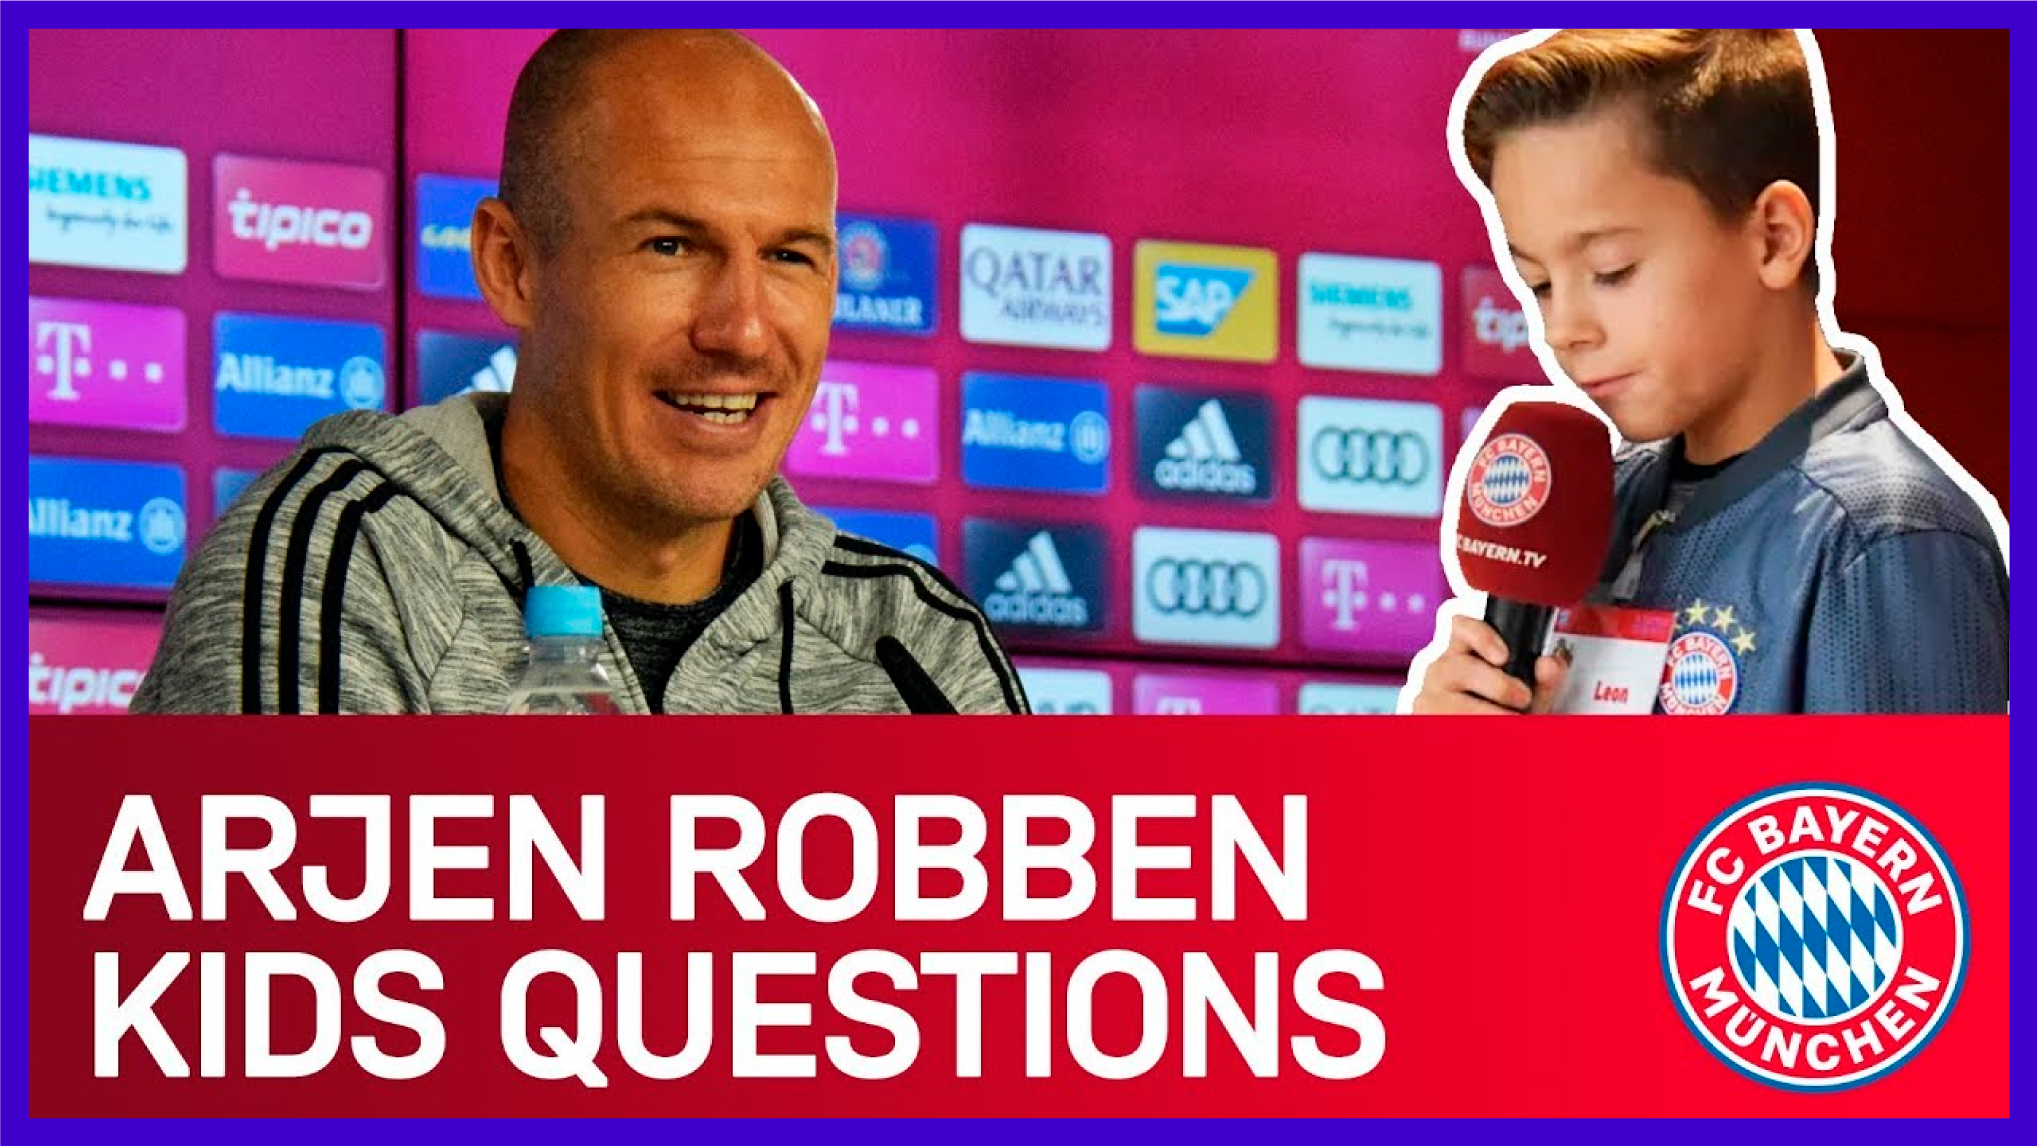 Bayern München's fan engagement YouTube series: KIDS QUESTIONS in which team players such as Arjen Robben and David Alaba answer questions of younger fans